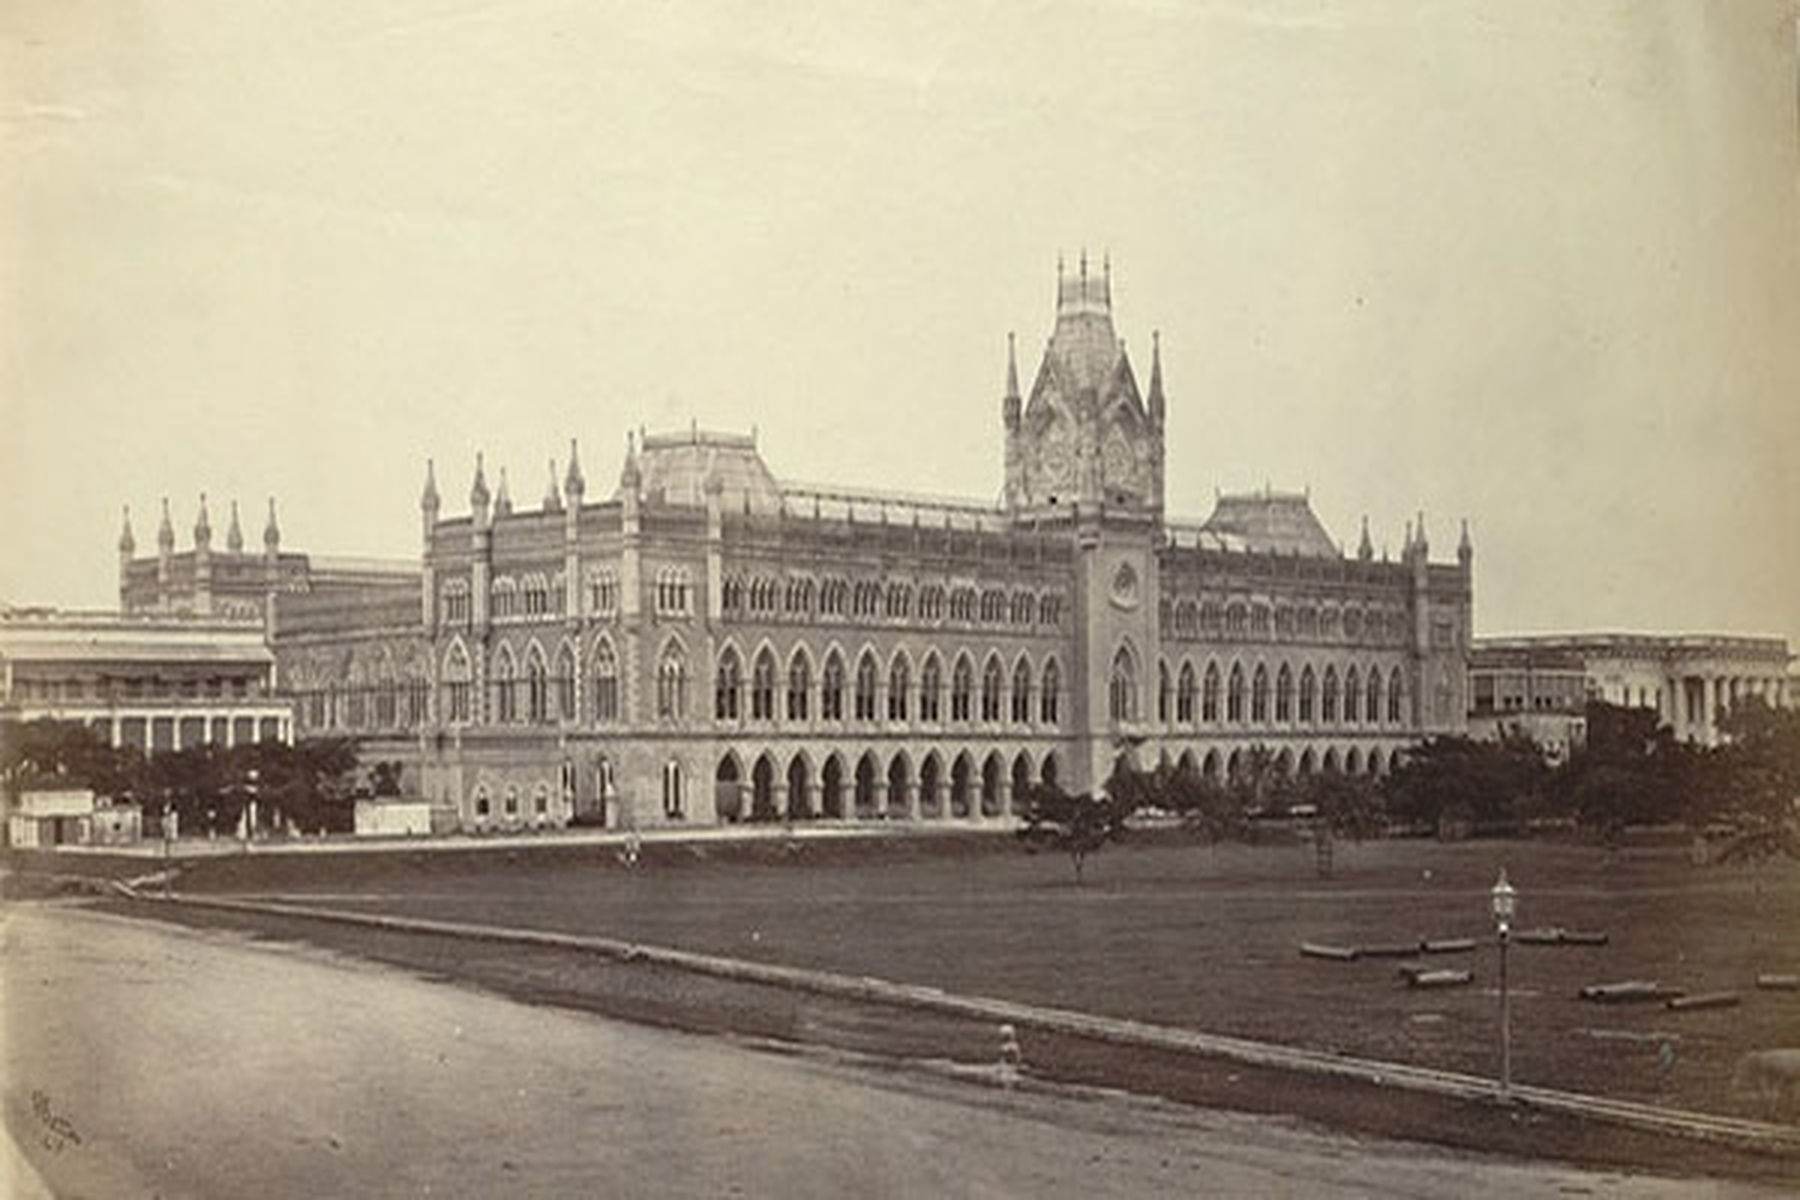 Calcutta High Court Main Building in 1945